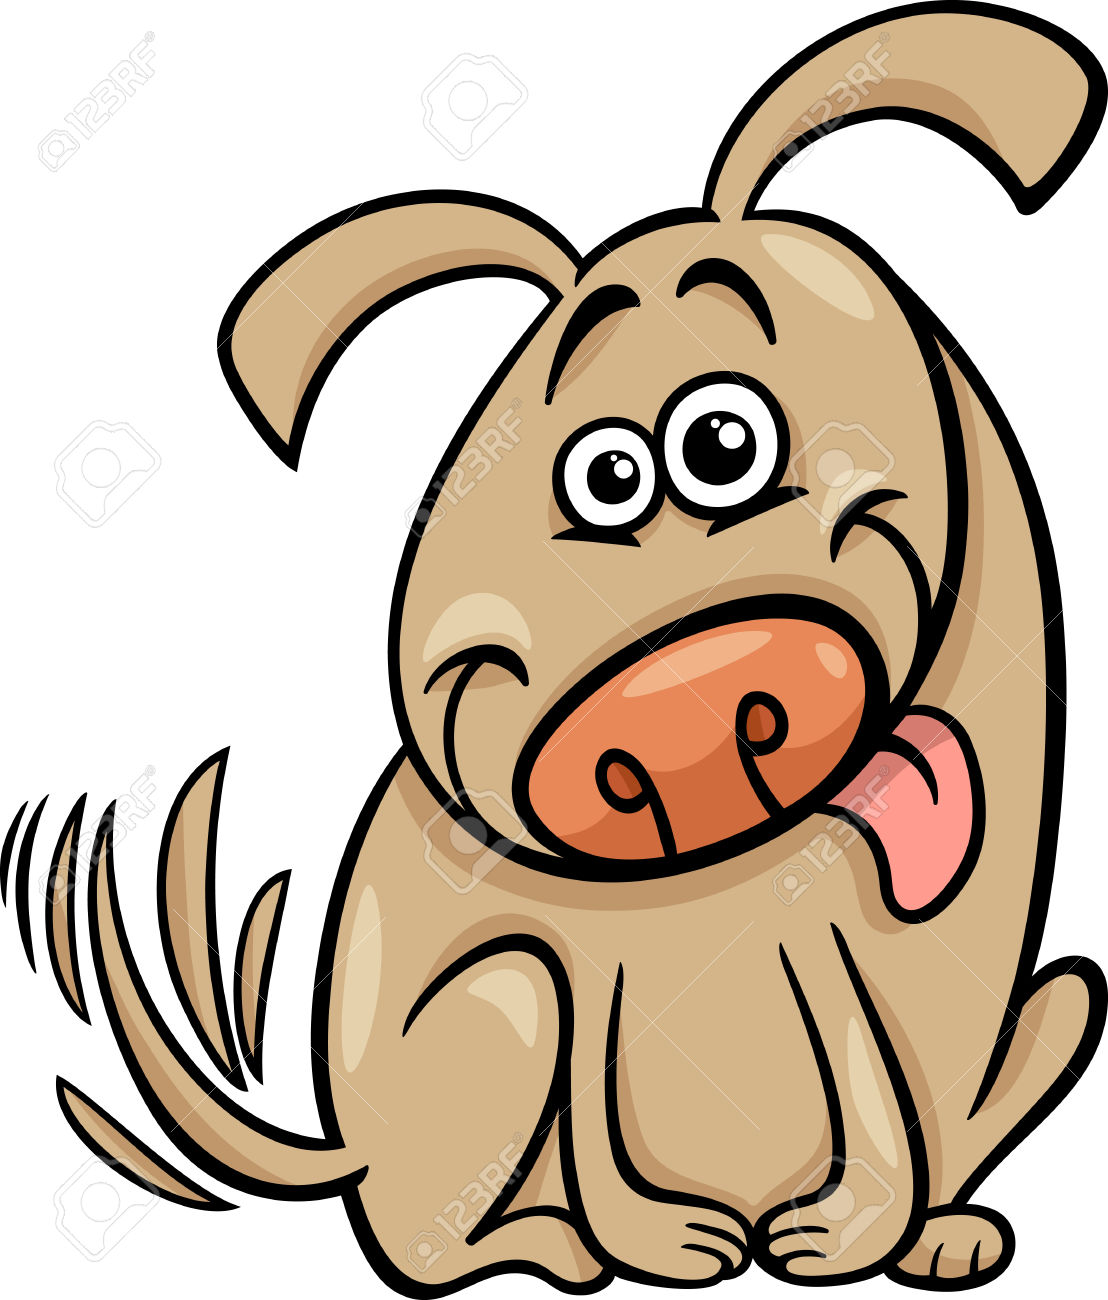 Clipart dog wagging tail image Cartoon Illustration Of Cute Dog Wagging His Tail Royalty Free ... image